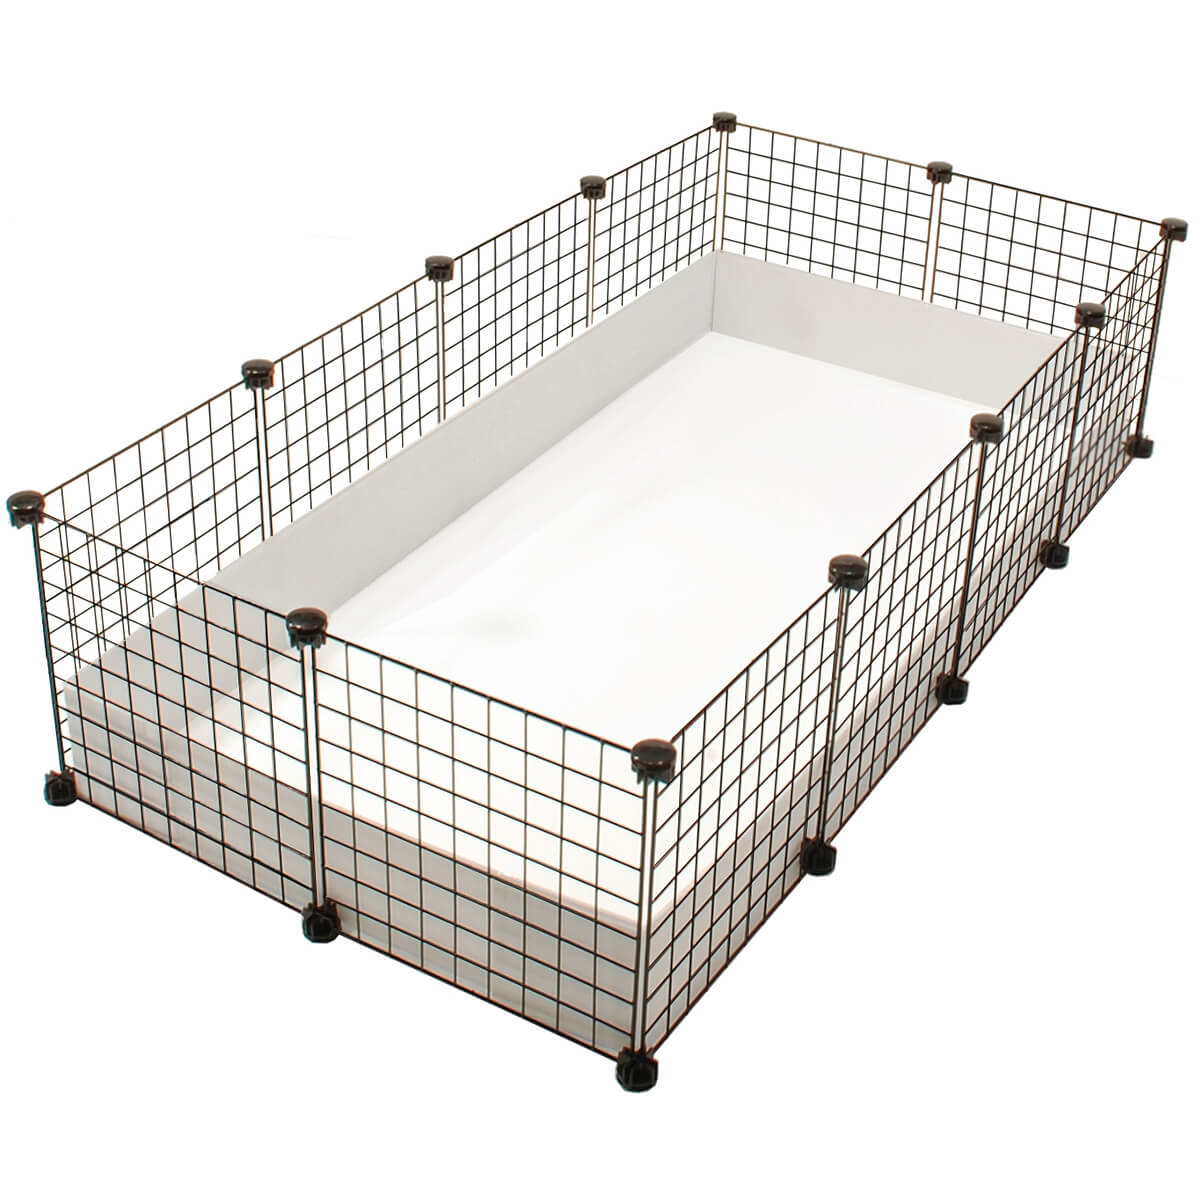 Relatively Large (2x4 Grids) Cage - Standard Cages - Cagetopia YR67